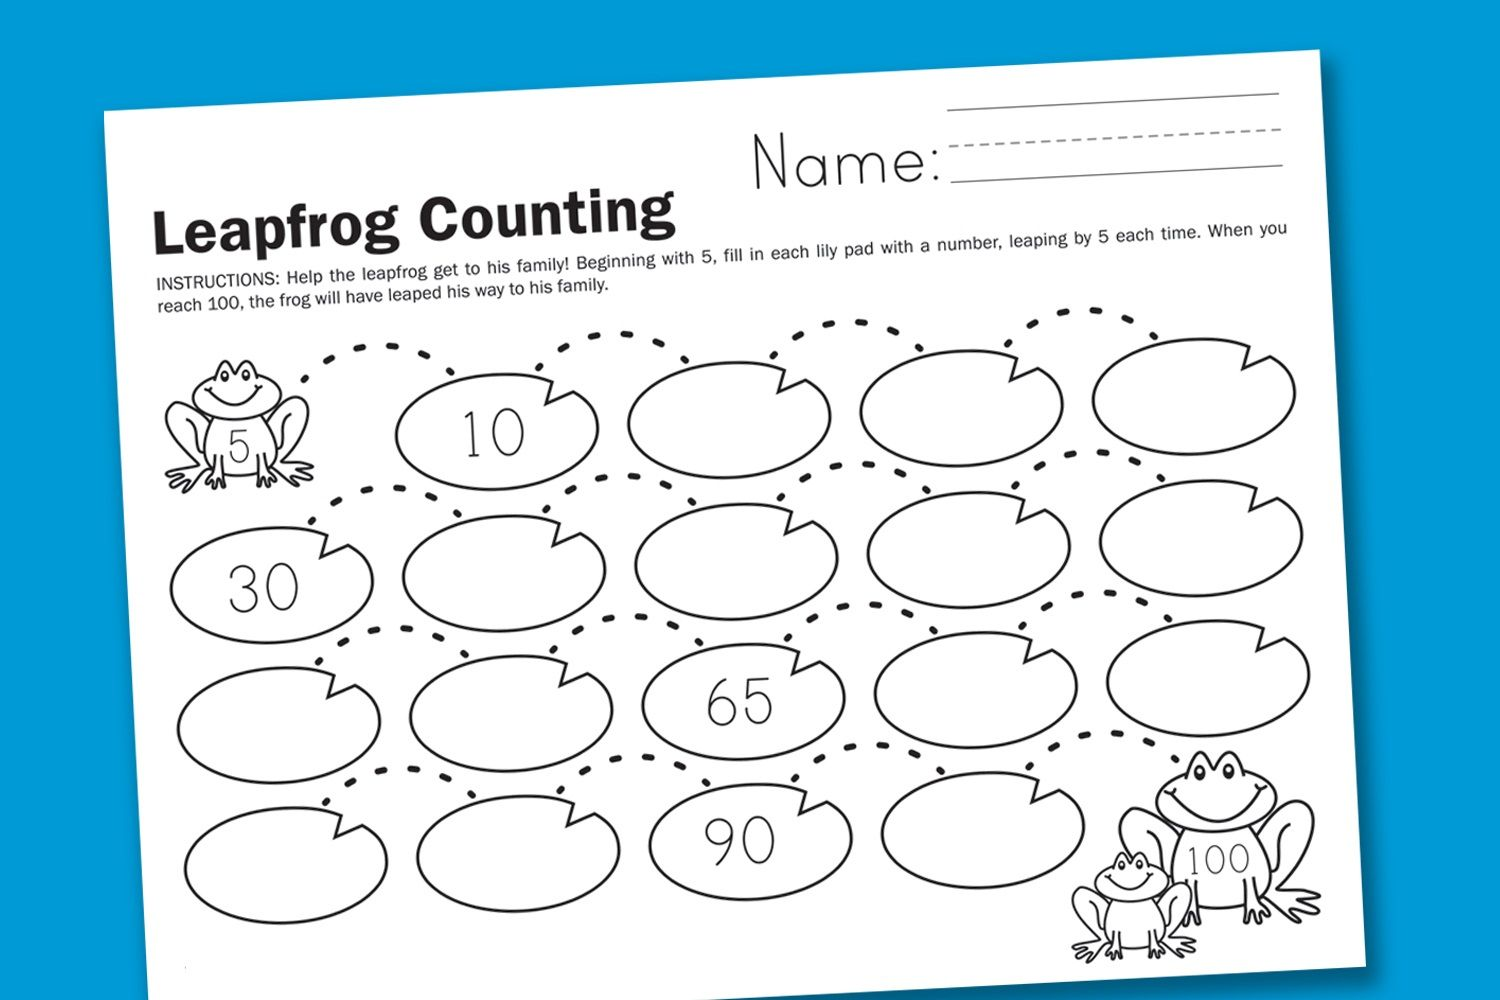 Worksheets Skip Counting Worksheets count by 5 worksheets to print activity shelter kids in honor of leap day weve made a leapfrog counting worksheet for wednesday as far having an extra im plan